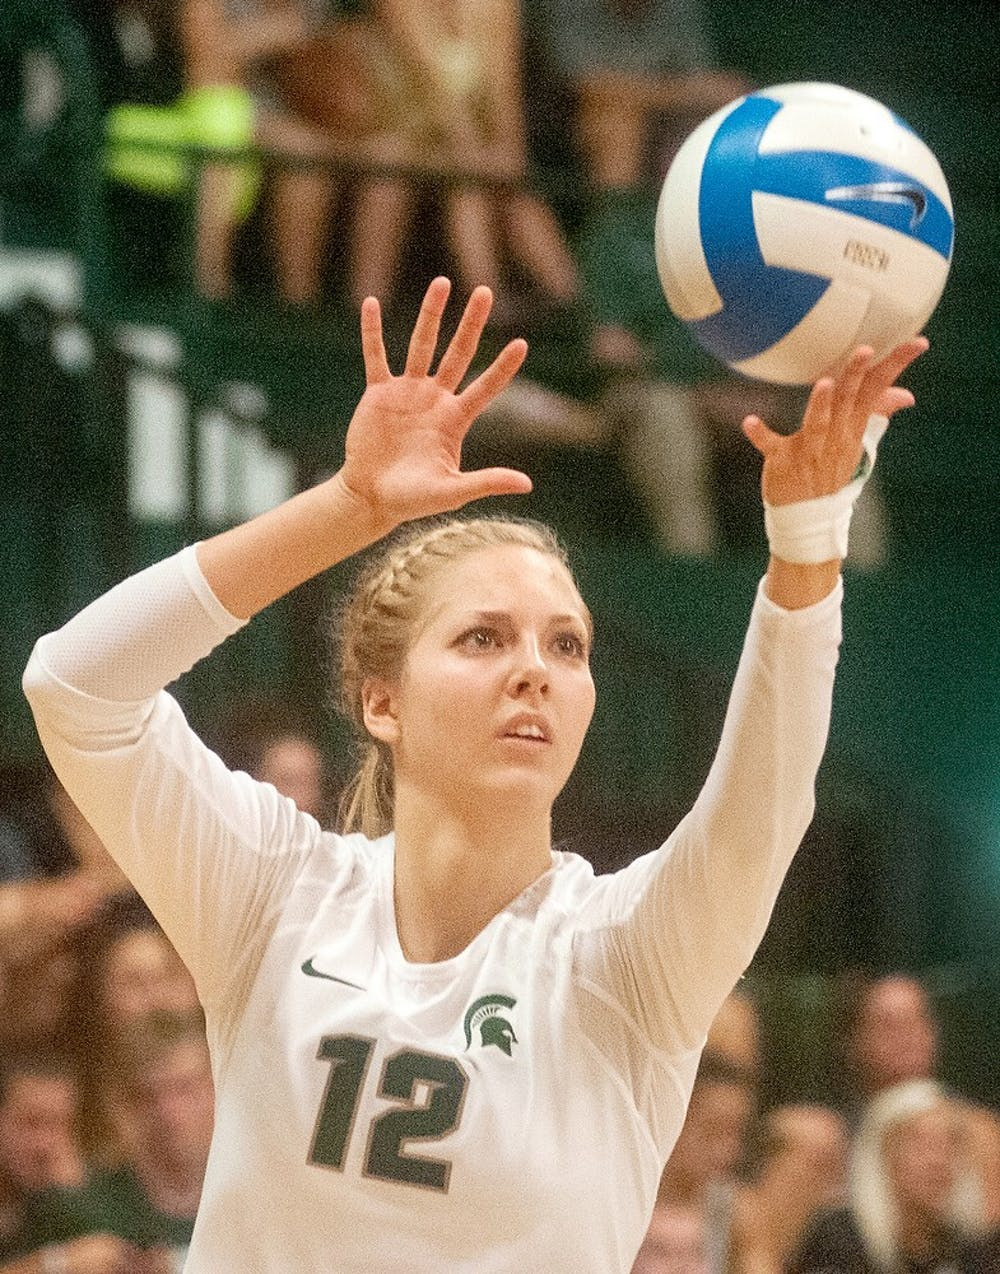 <p>Freshman setter Rachel Minarick serves the ball during a volleyball game against the University of North Carolina on Sept. 5, 2014, at Jenison Fieldhouse. The Rams defeated the Spartans, 3-0. Jessalyn Tamez/The State News. </p>